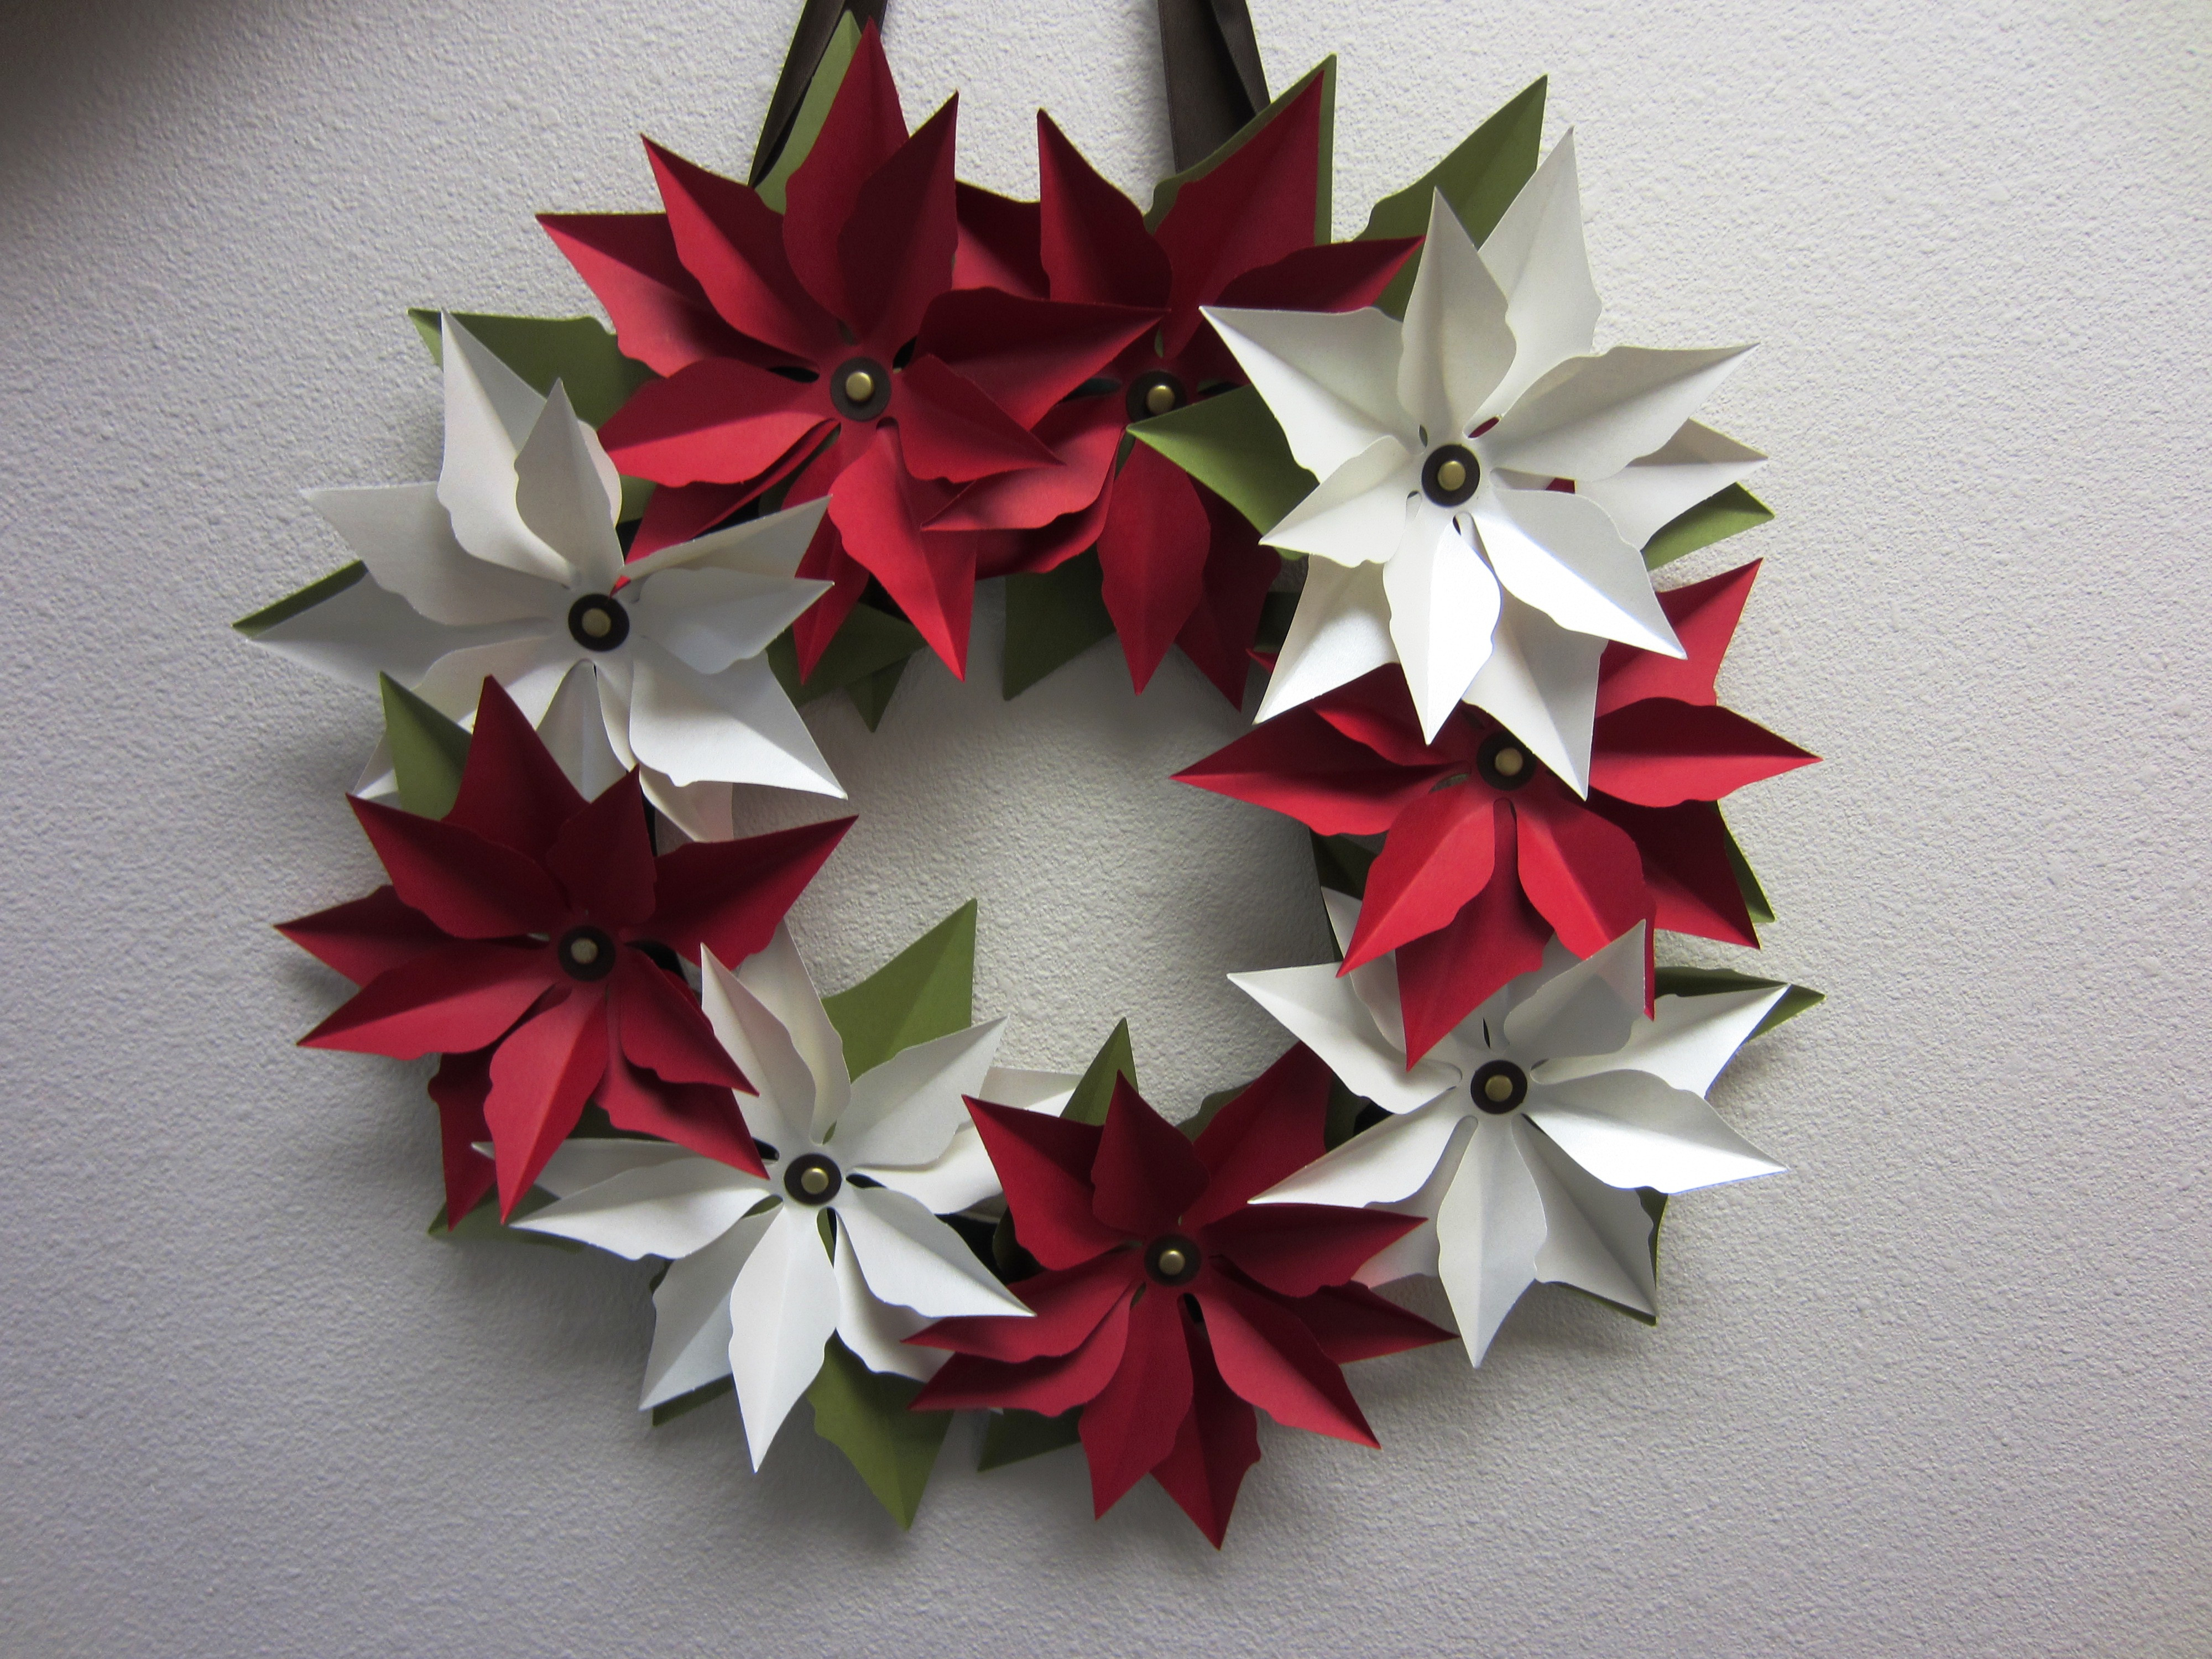 The Best Ideas for Paper Crafts for Adults - Home ...